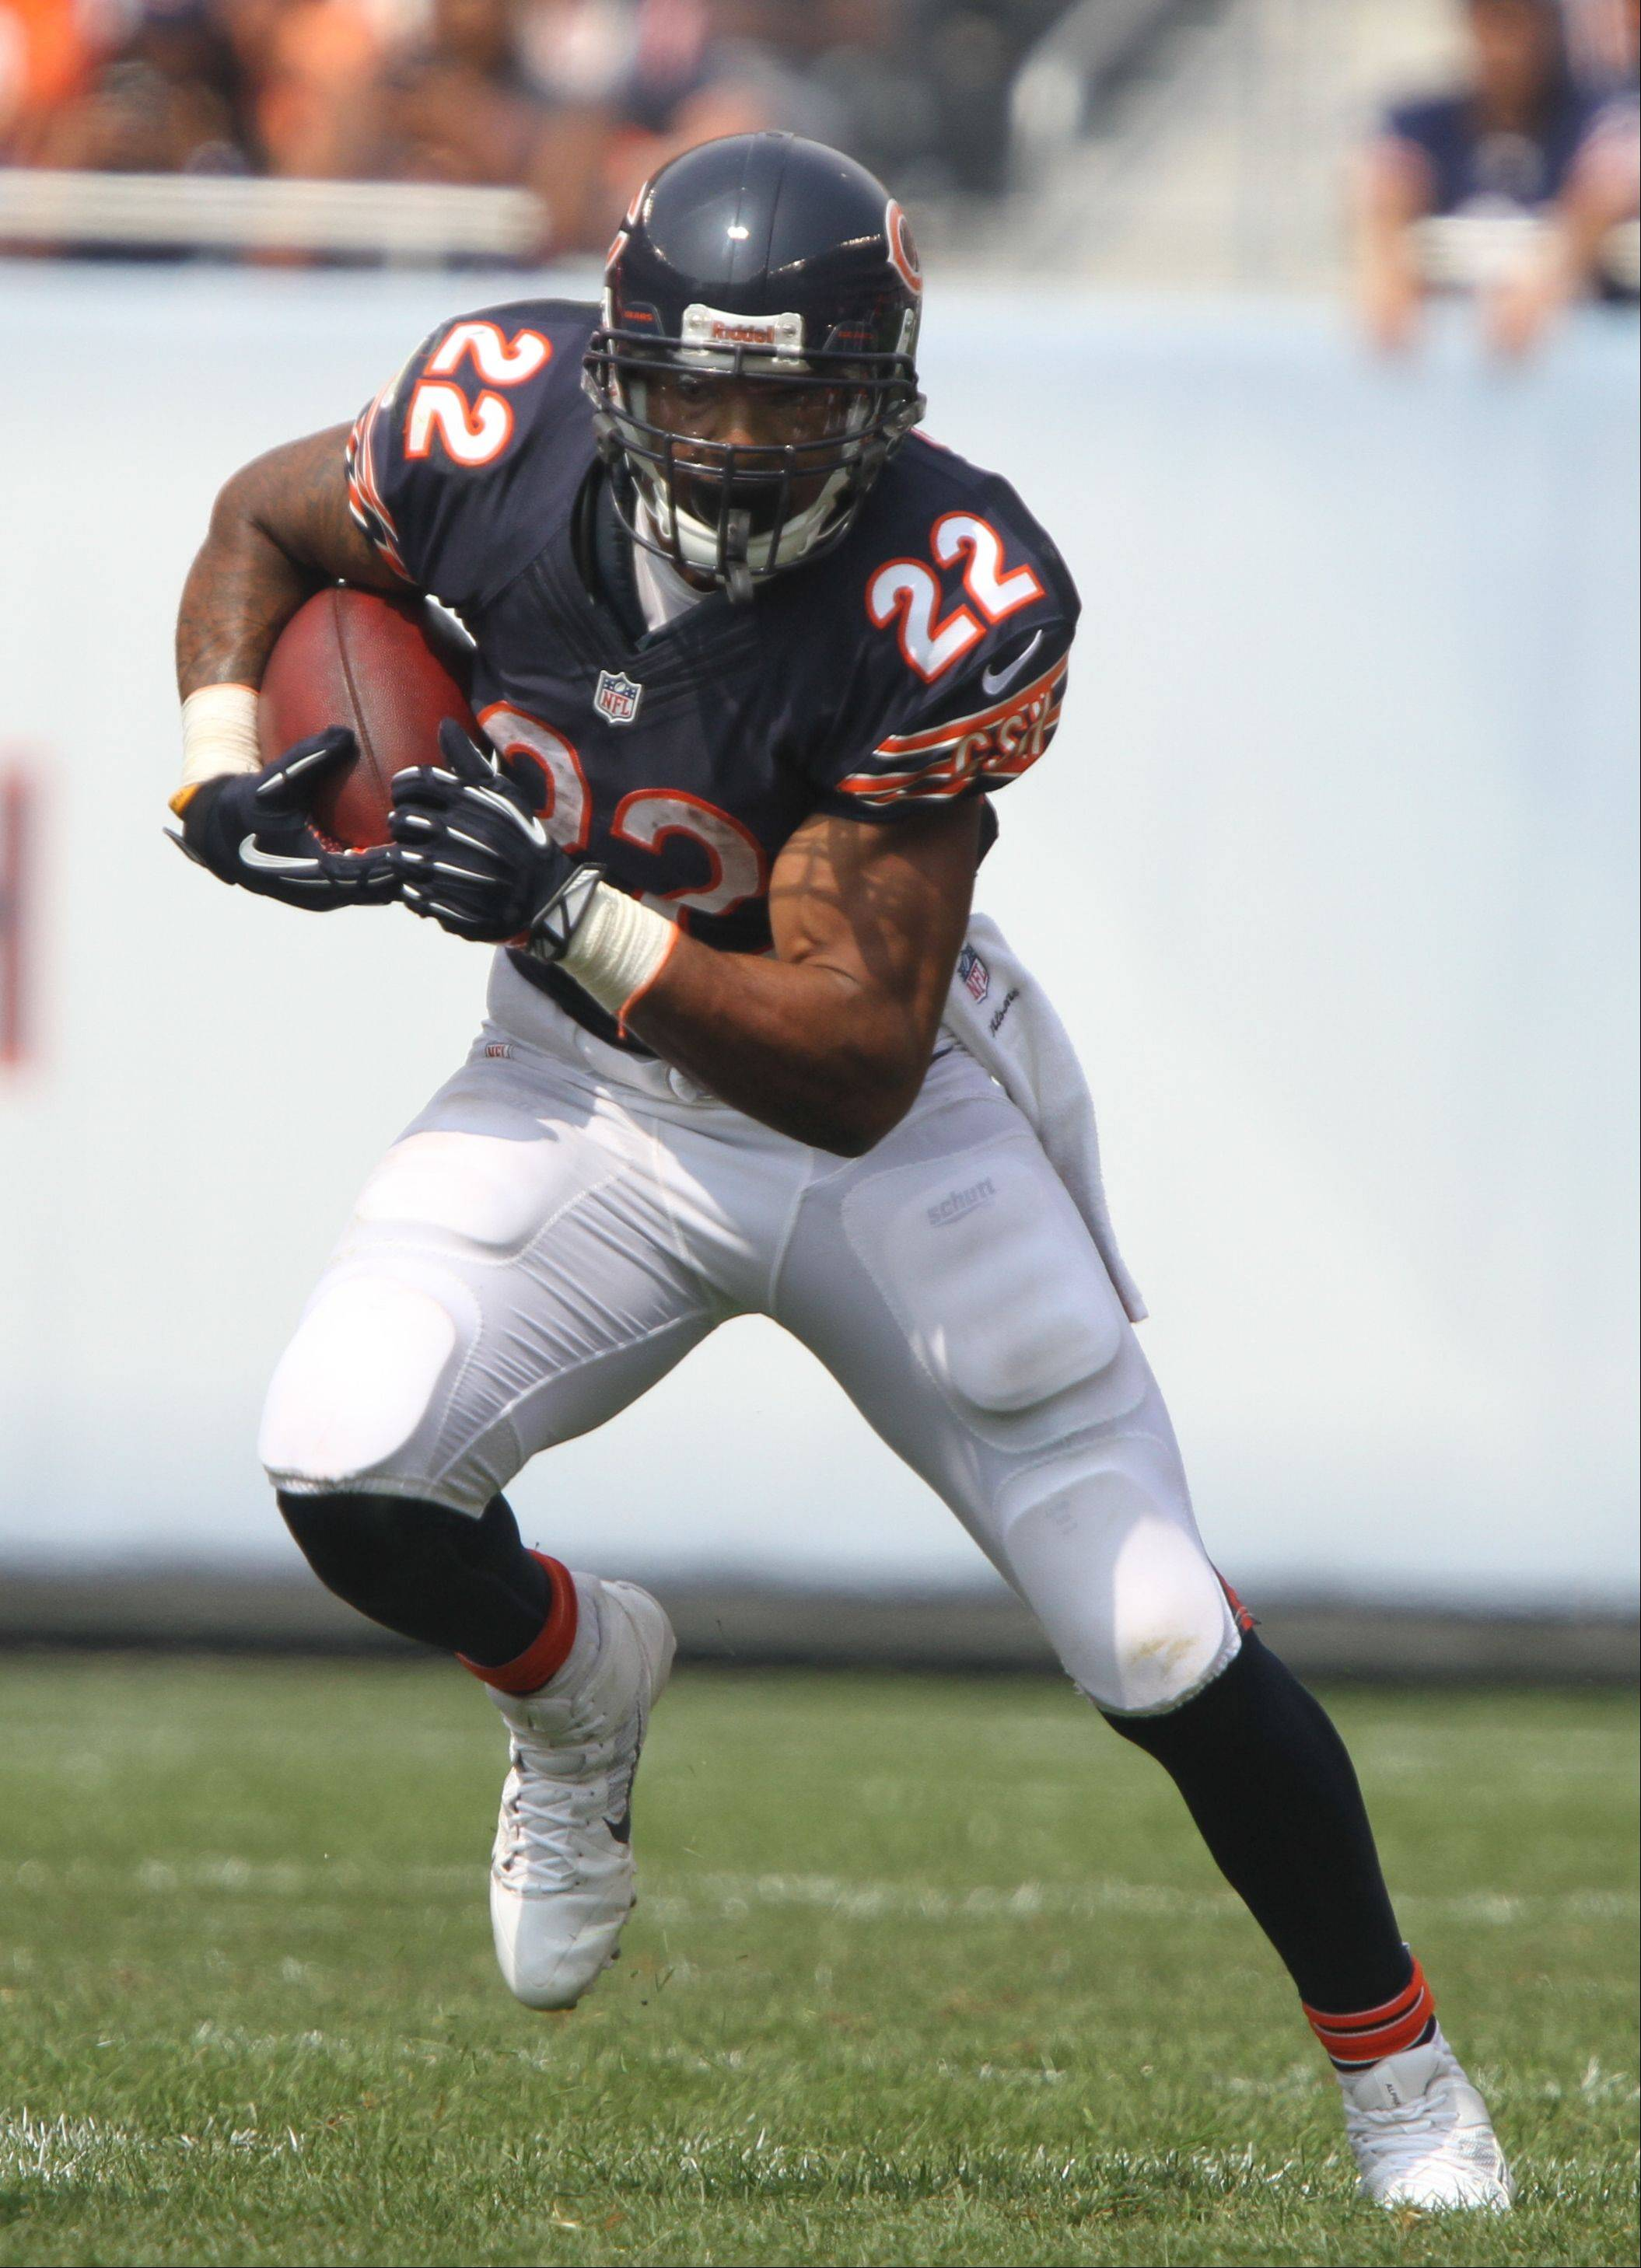 Chicago Bears running back Matt Forte looks for an opening during their opening day game against the Cincinnati Bengals Sunday at Soldier Field in Chicago.